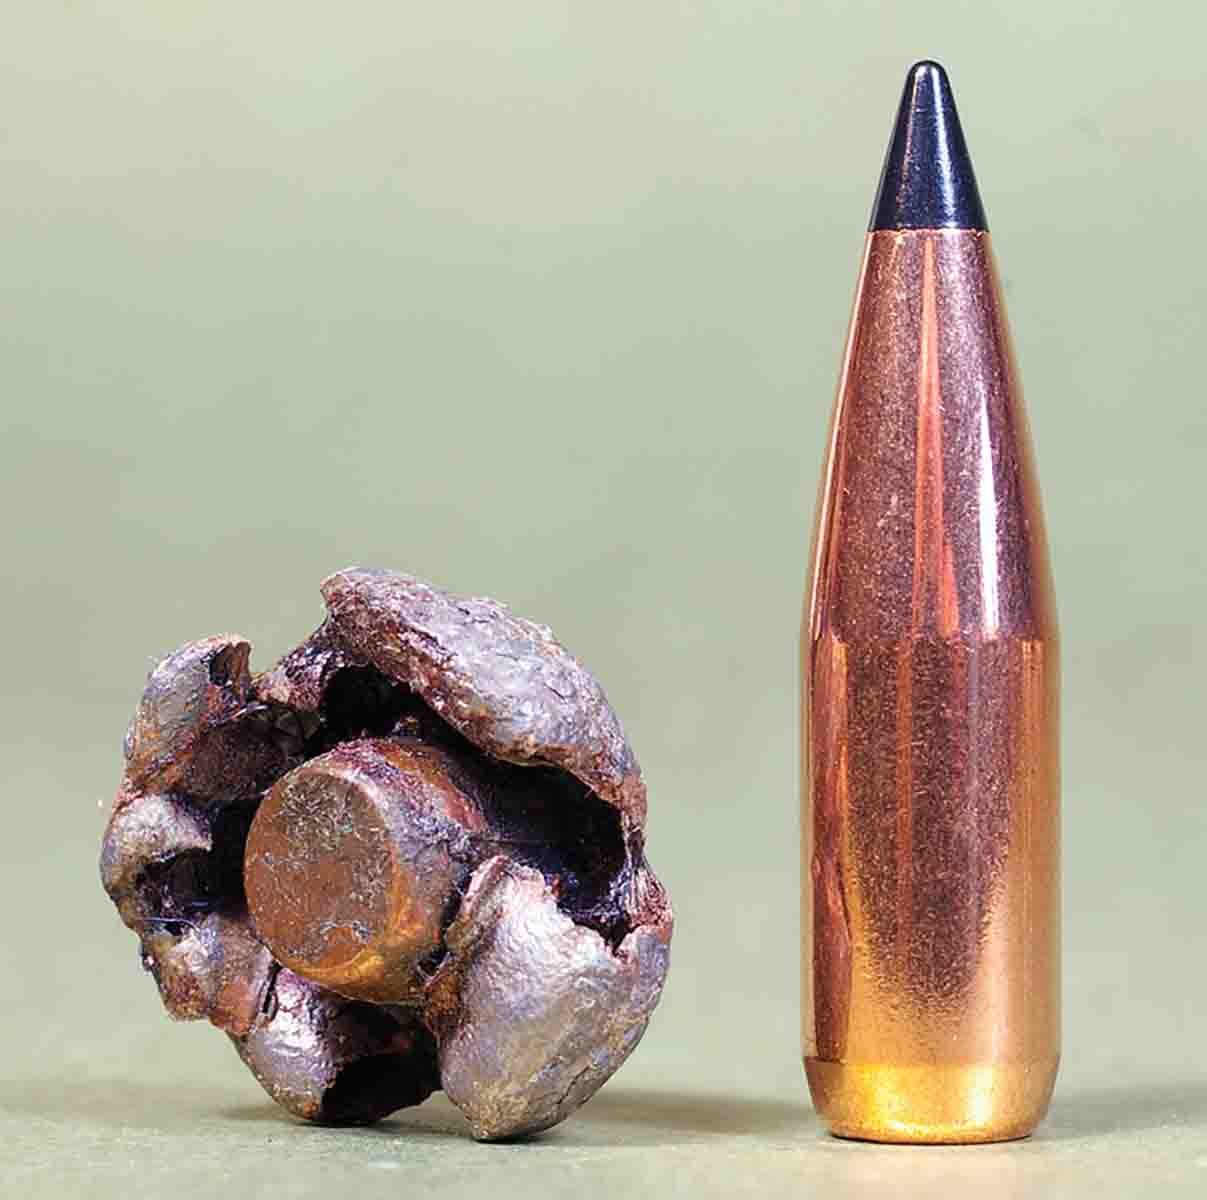 This 150-grain Scirocco fired from a .30-06 was retrieved from an elk. The bullet held onto 135 grains of its original weight.